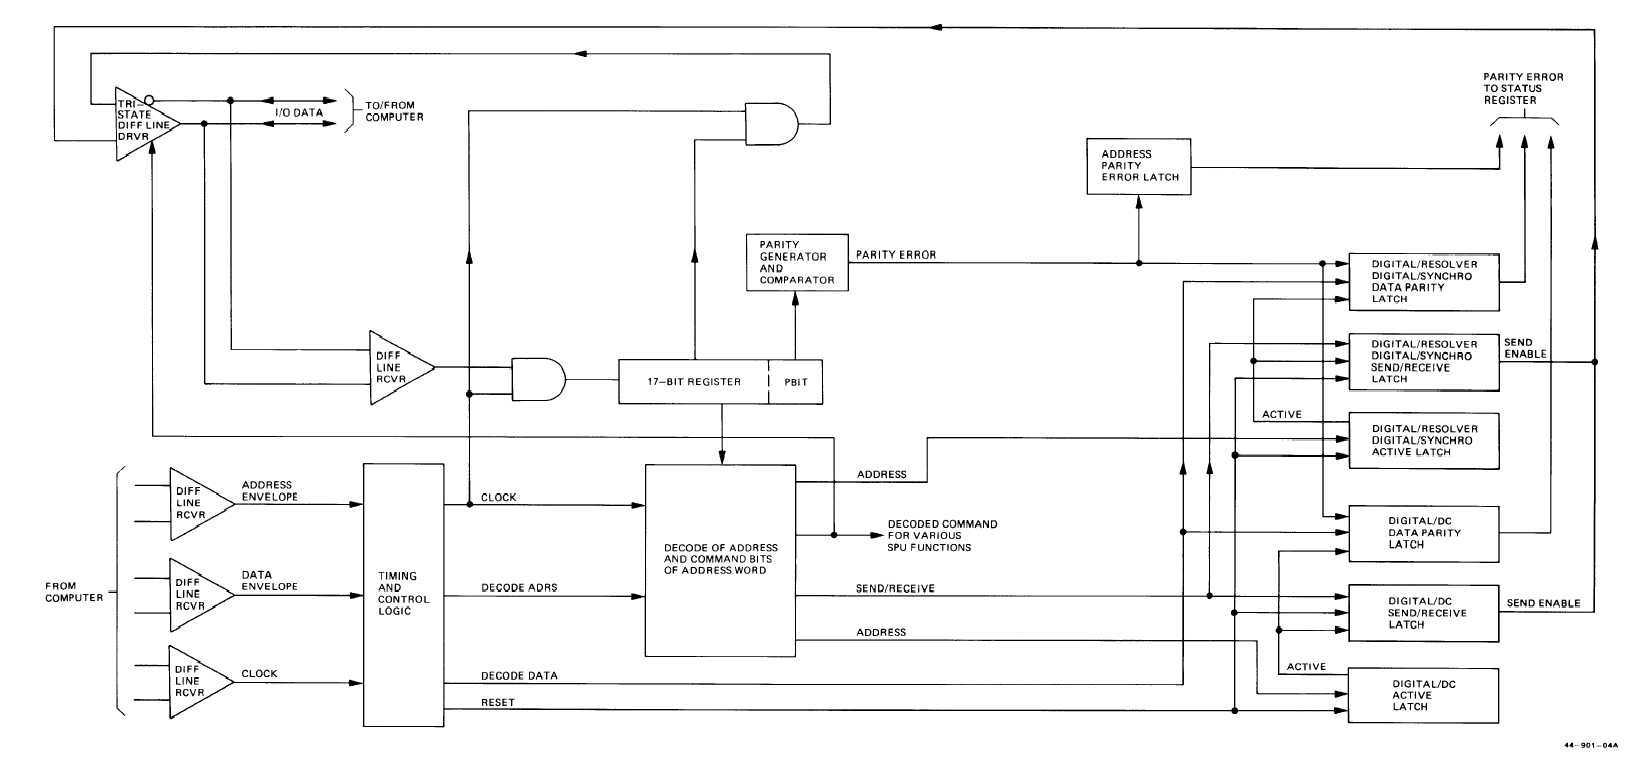 fo 2 serial data bus control logic functional block diagram rh topography tpub com control logic diagram examples control logic diagram software